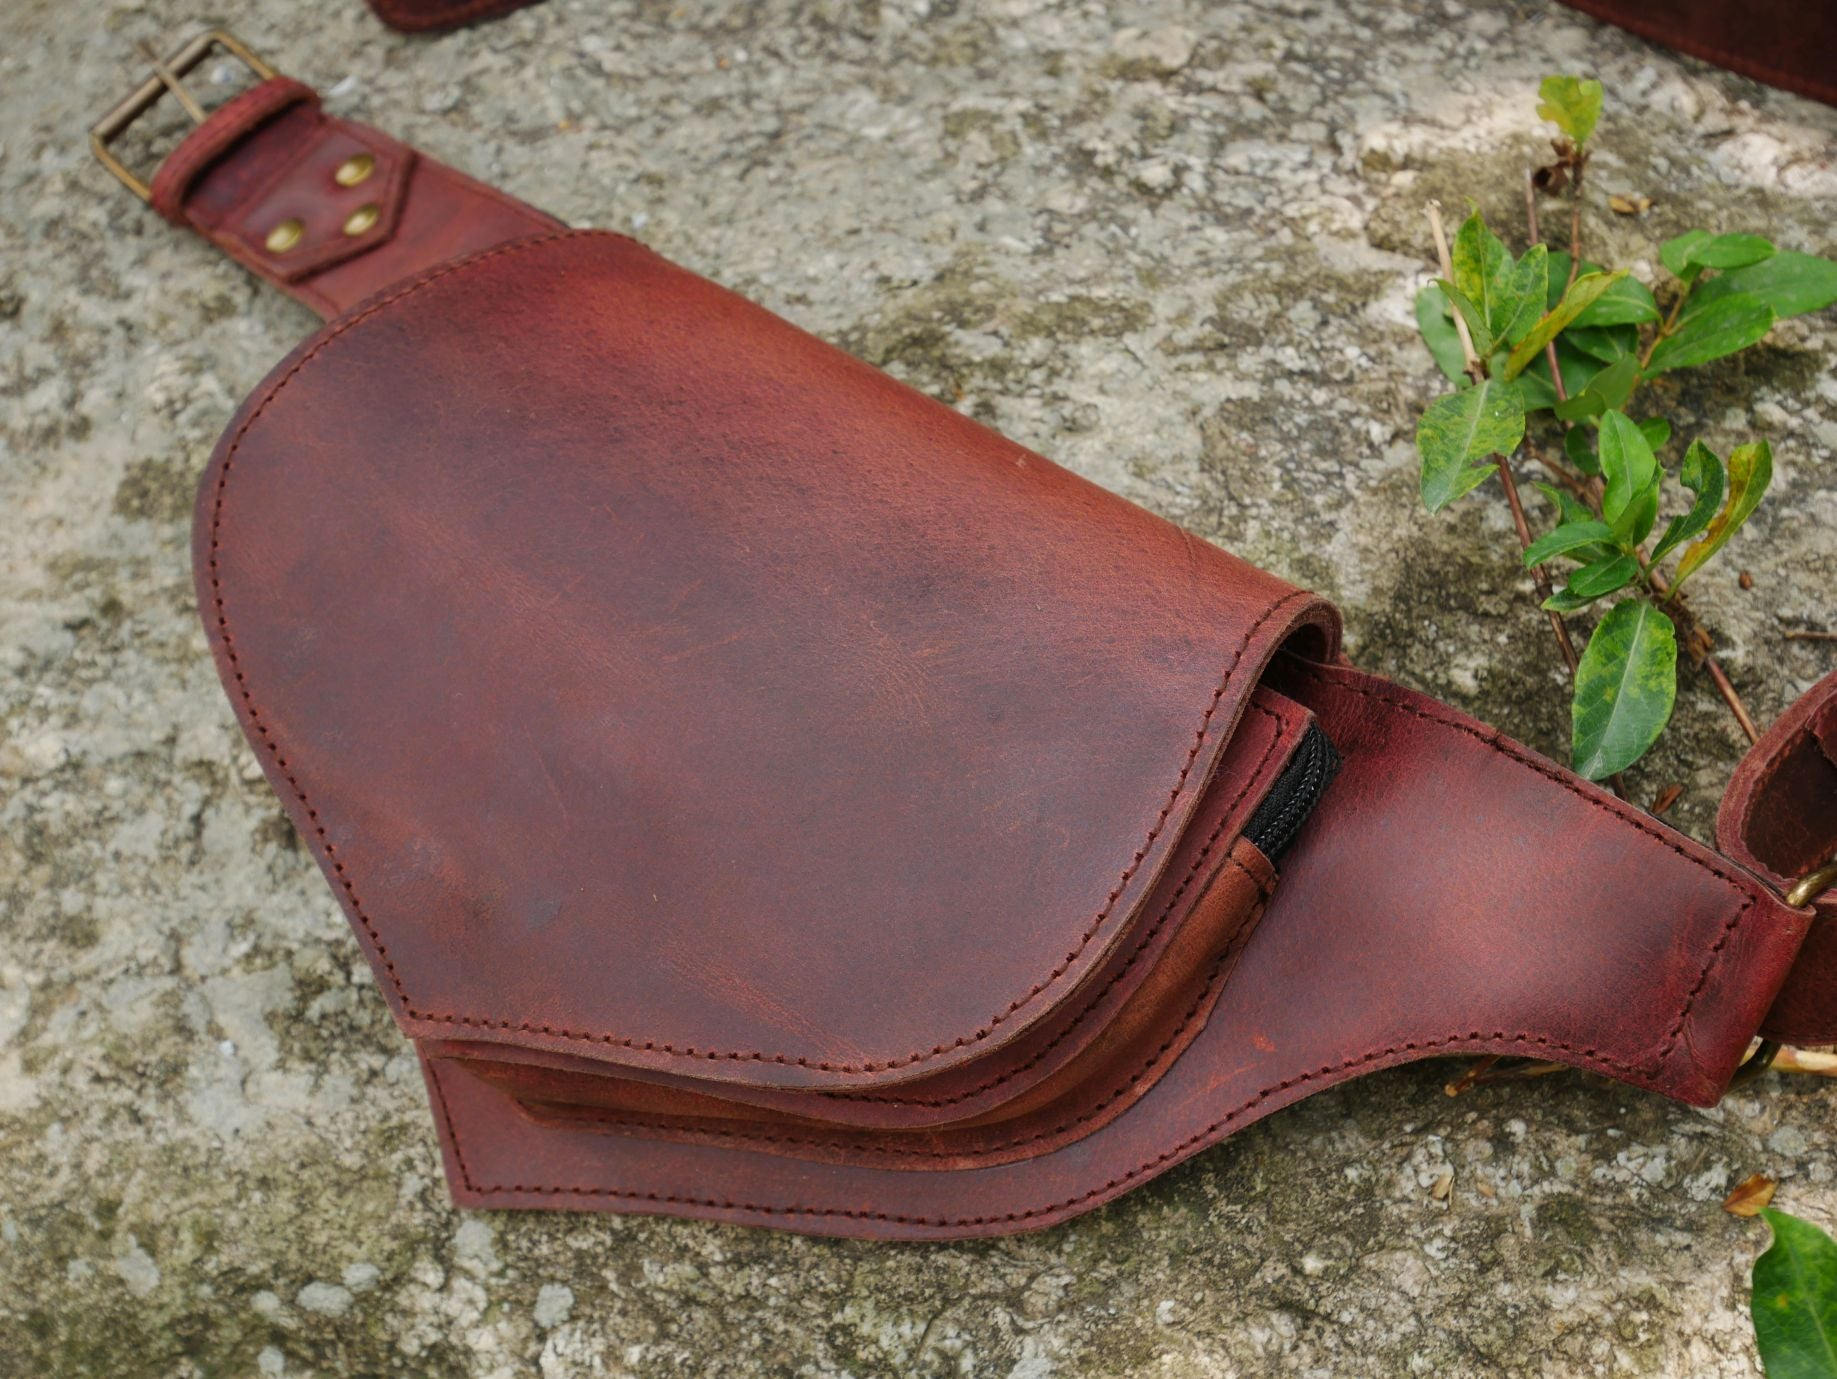 Leather hip bag - red- brown belt bag - leather fanny pack - boho waist bag - rustic leather